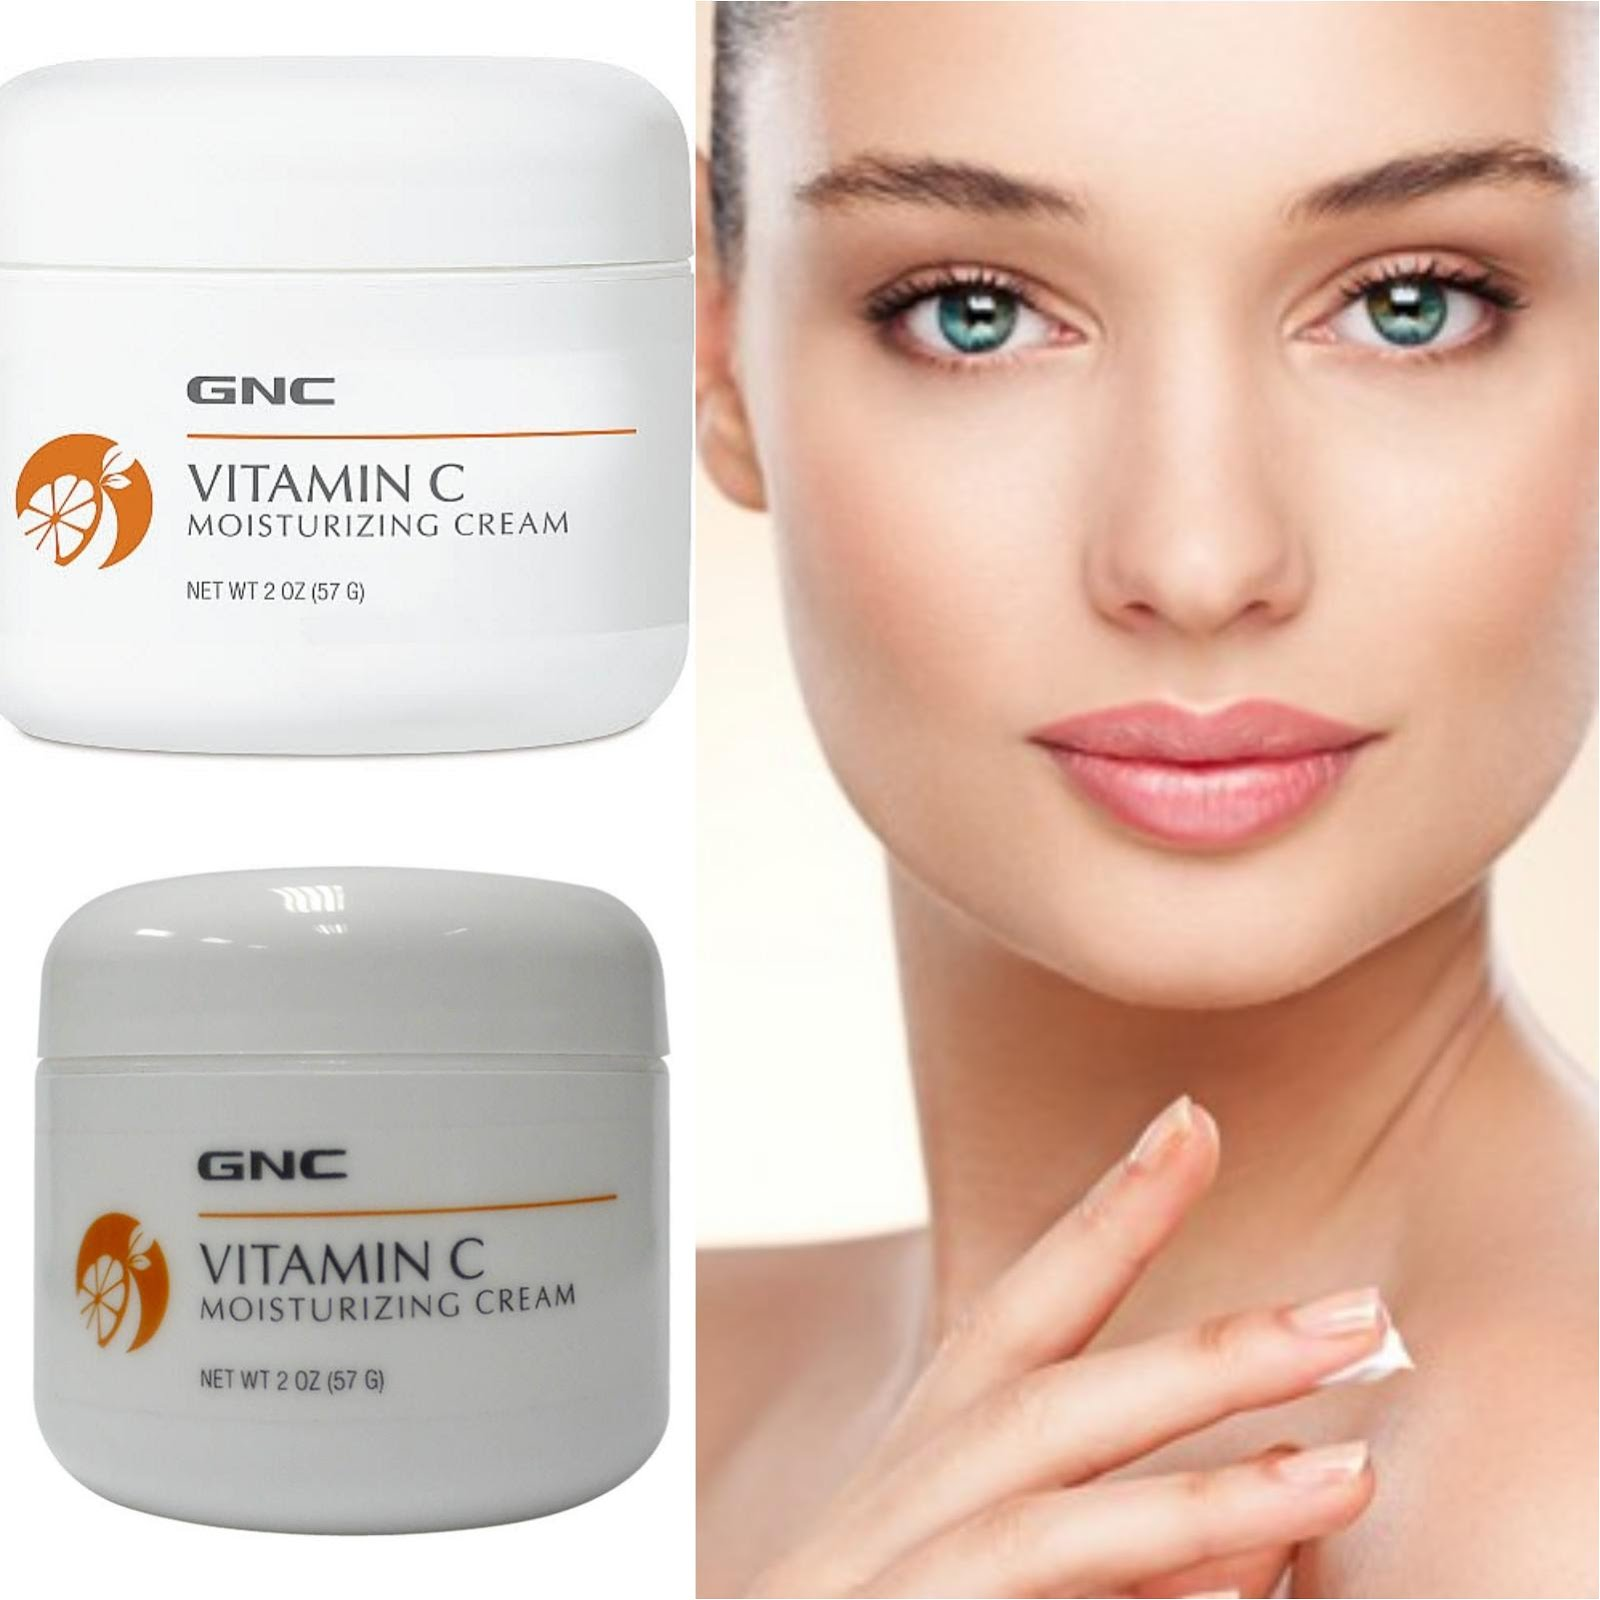 GNC VITAMIN C CREAM